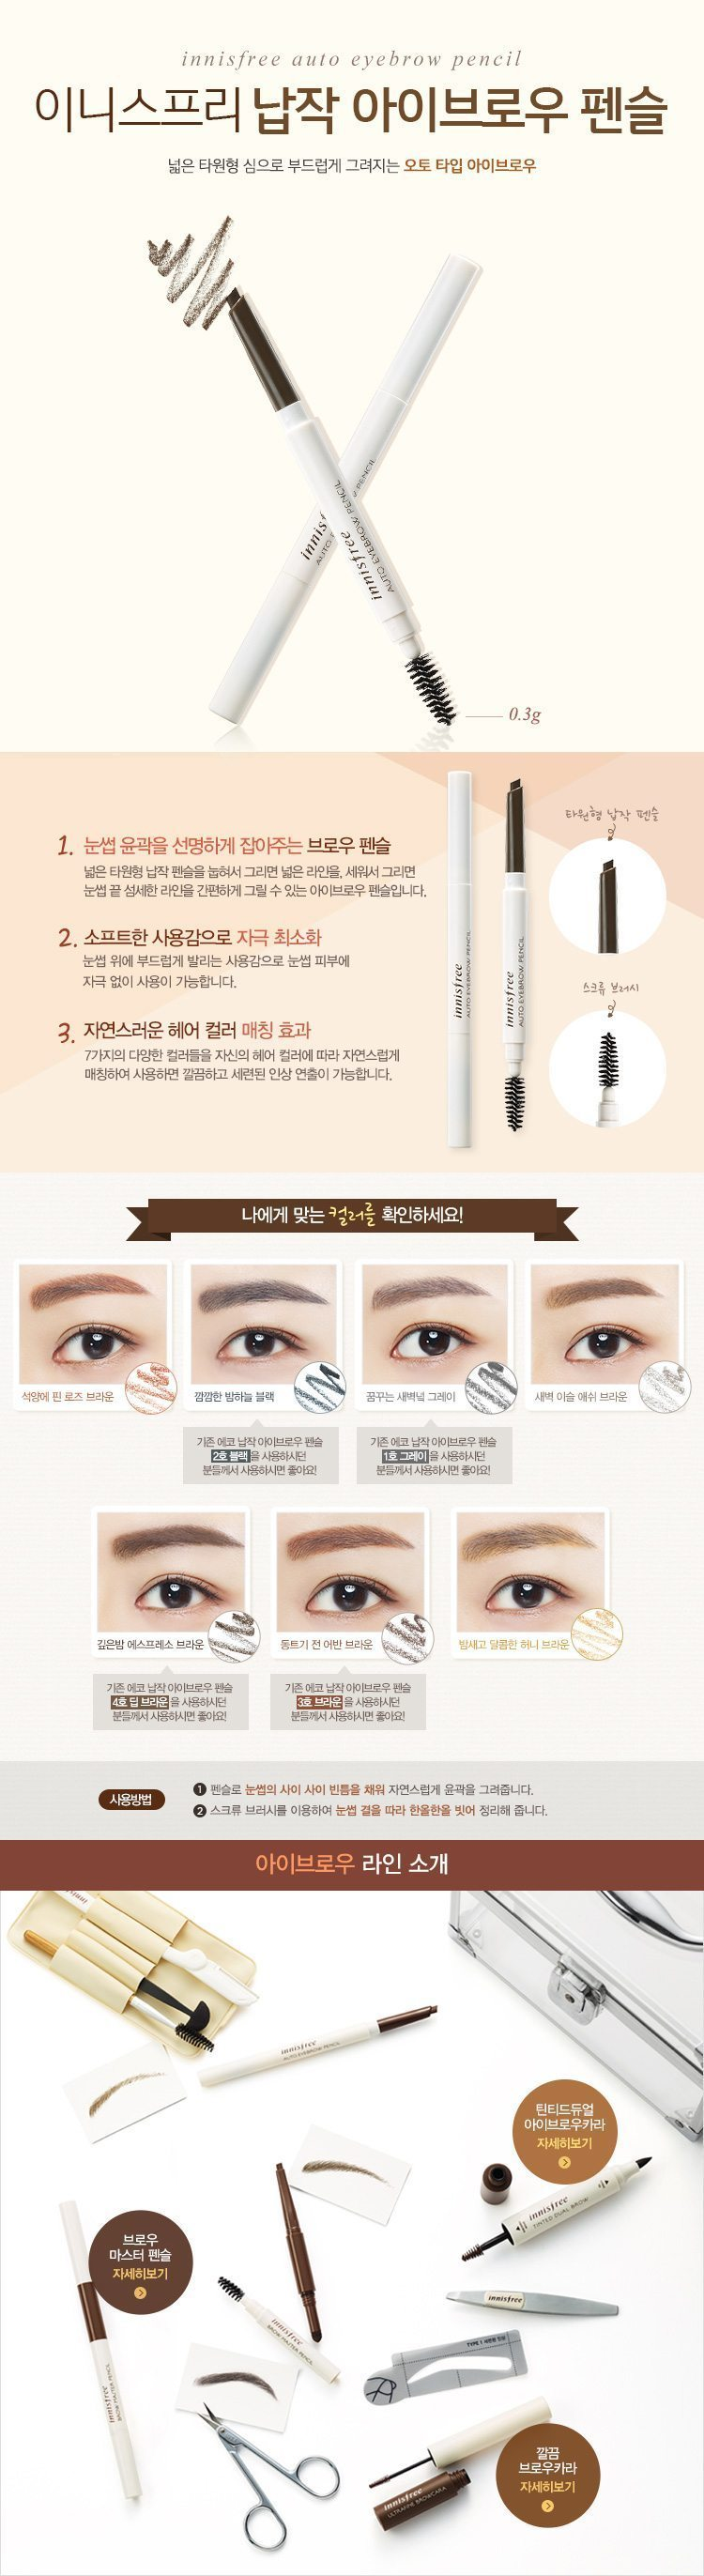 Innisfree Auto Eyebrow Pencil Price Malaysia Thailand Indonesia Singapore2